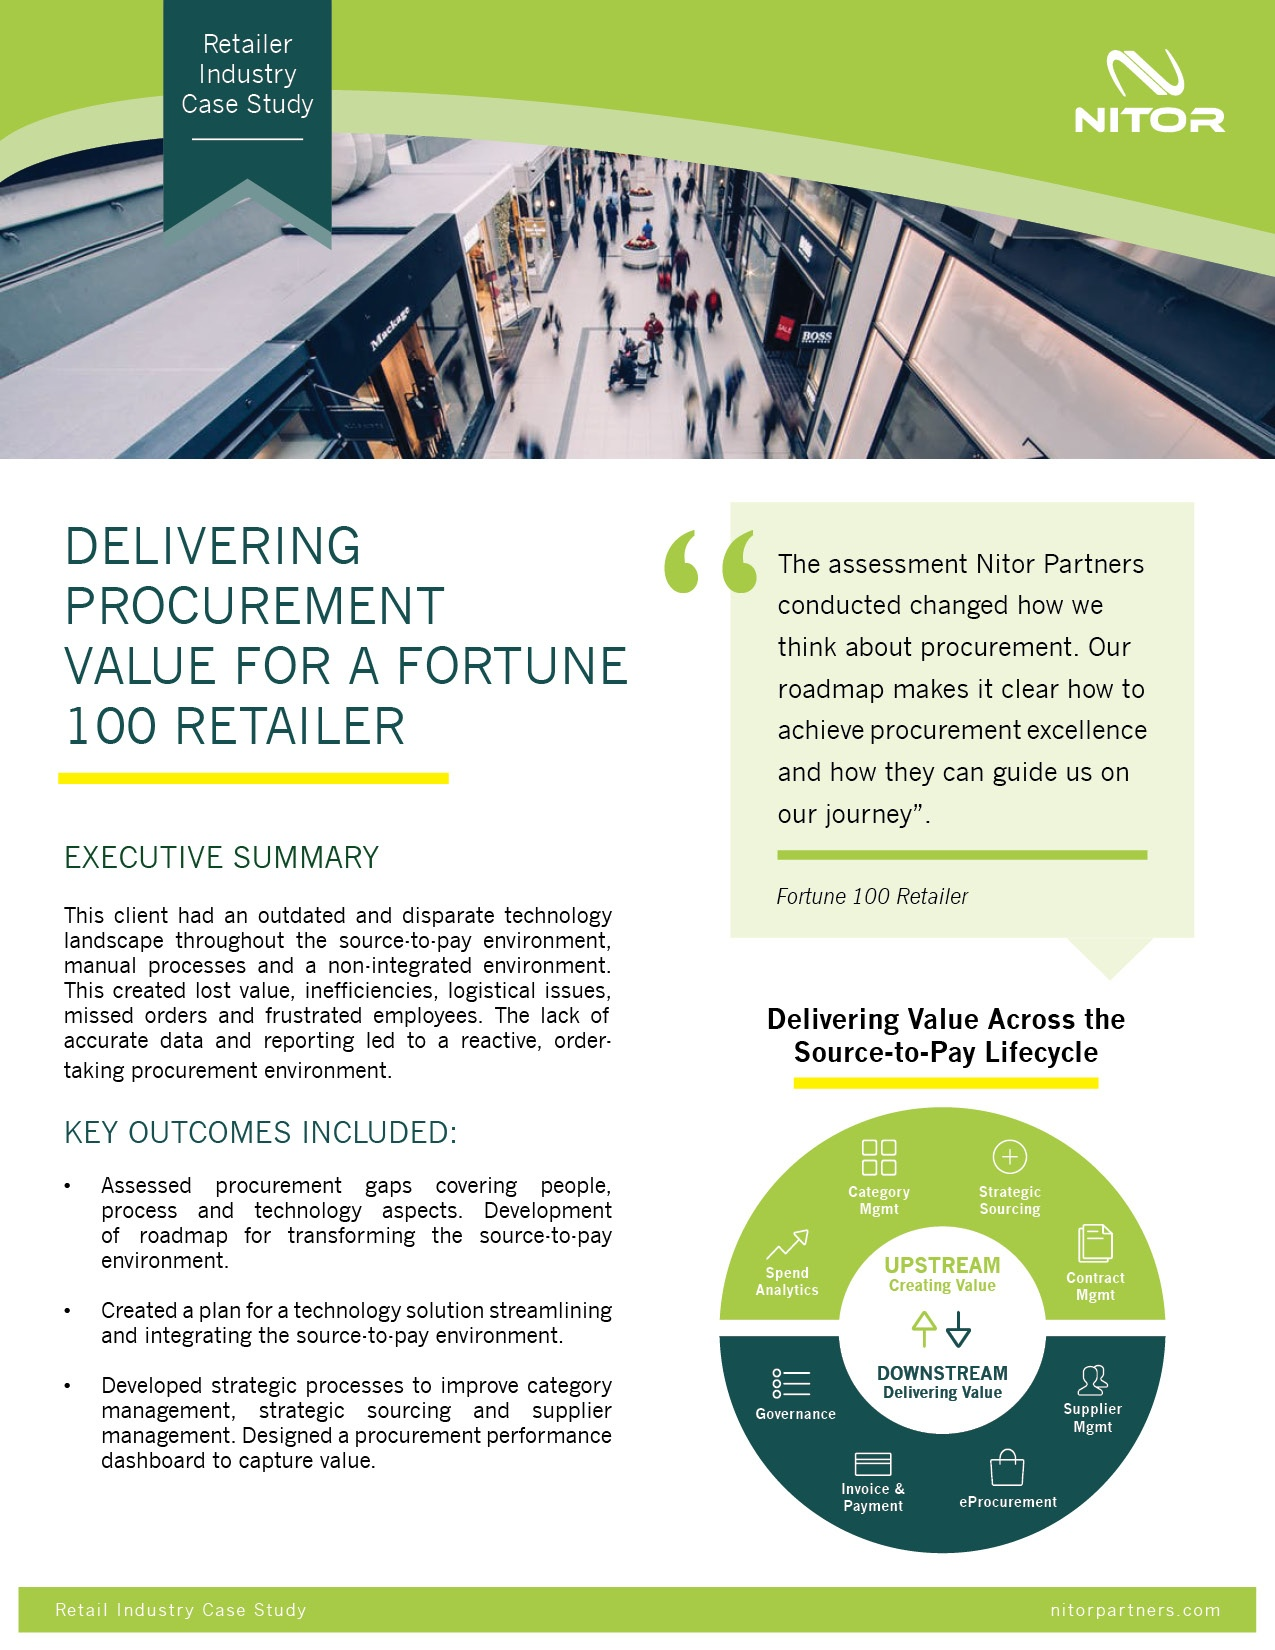 Nitor Procurement Case Study Retail Industry